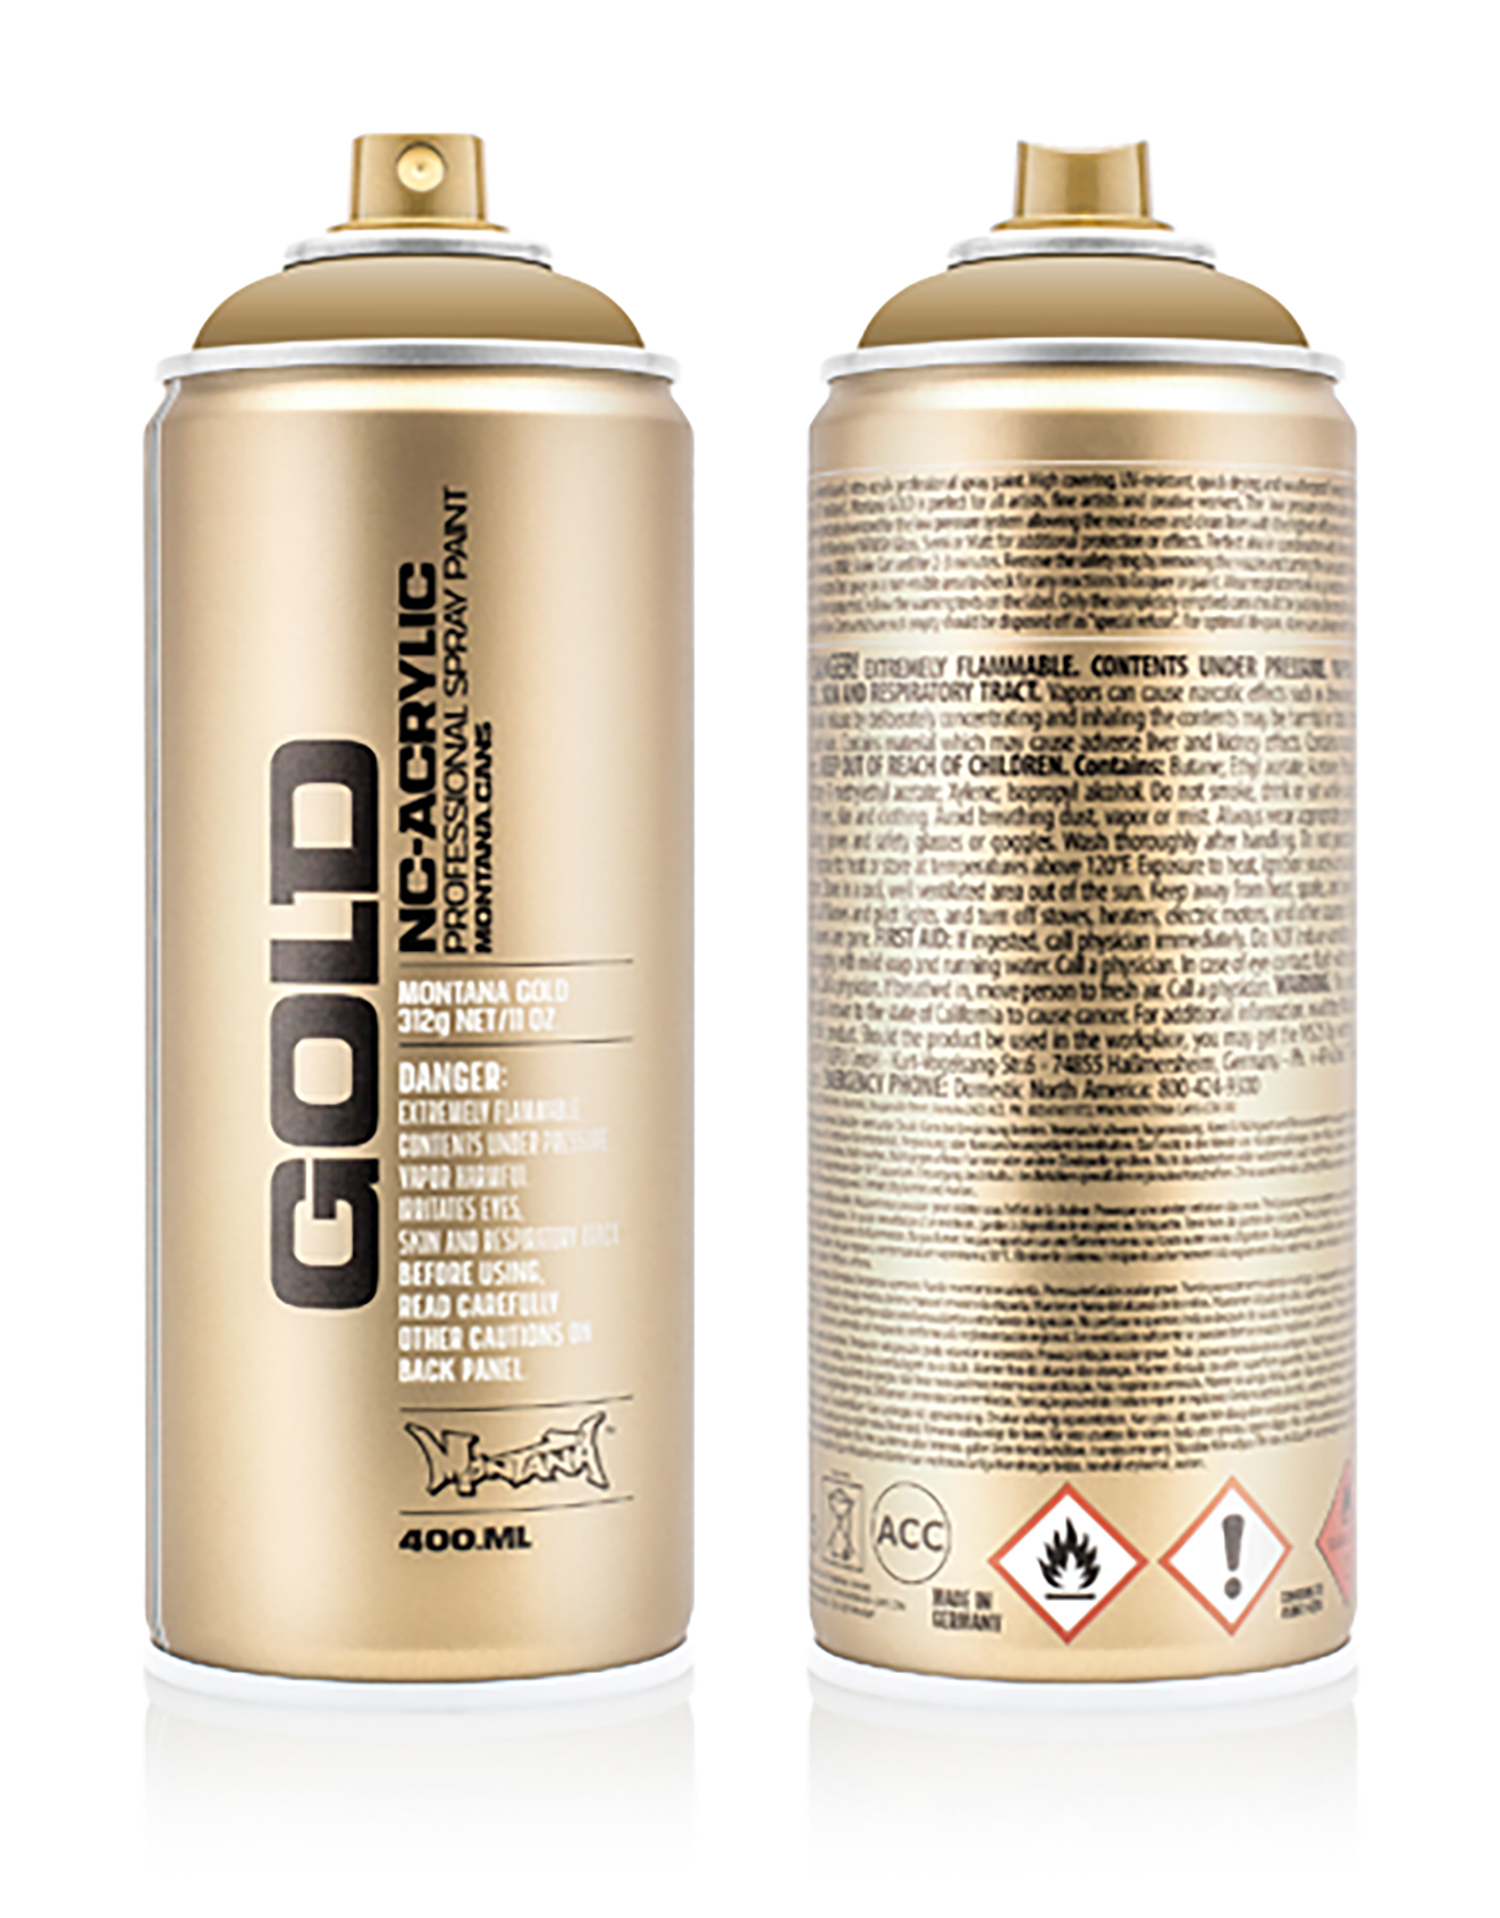 MONTANA-GOLD-SPRAY-400ML-G-8040